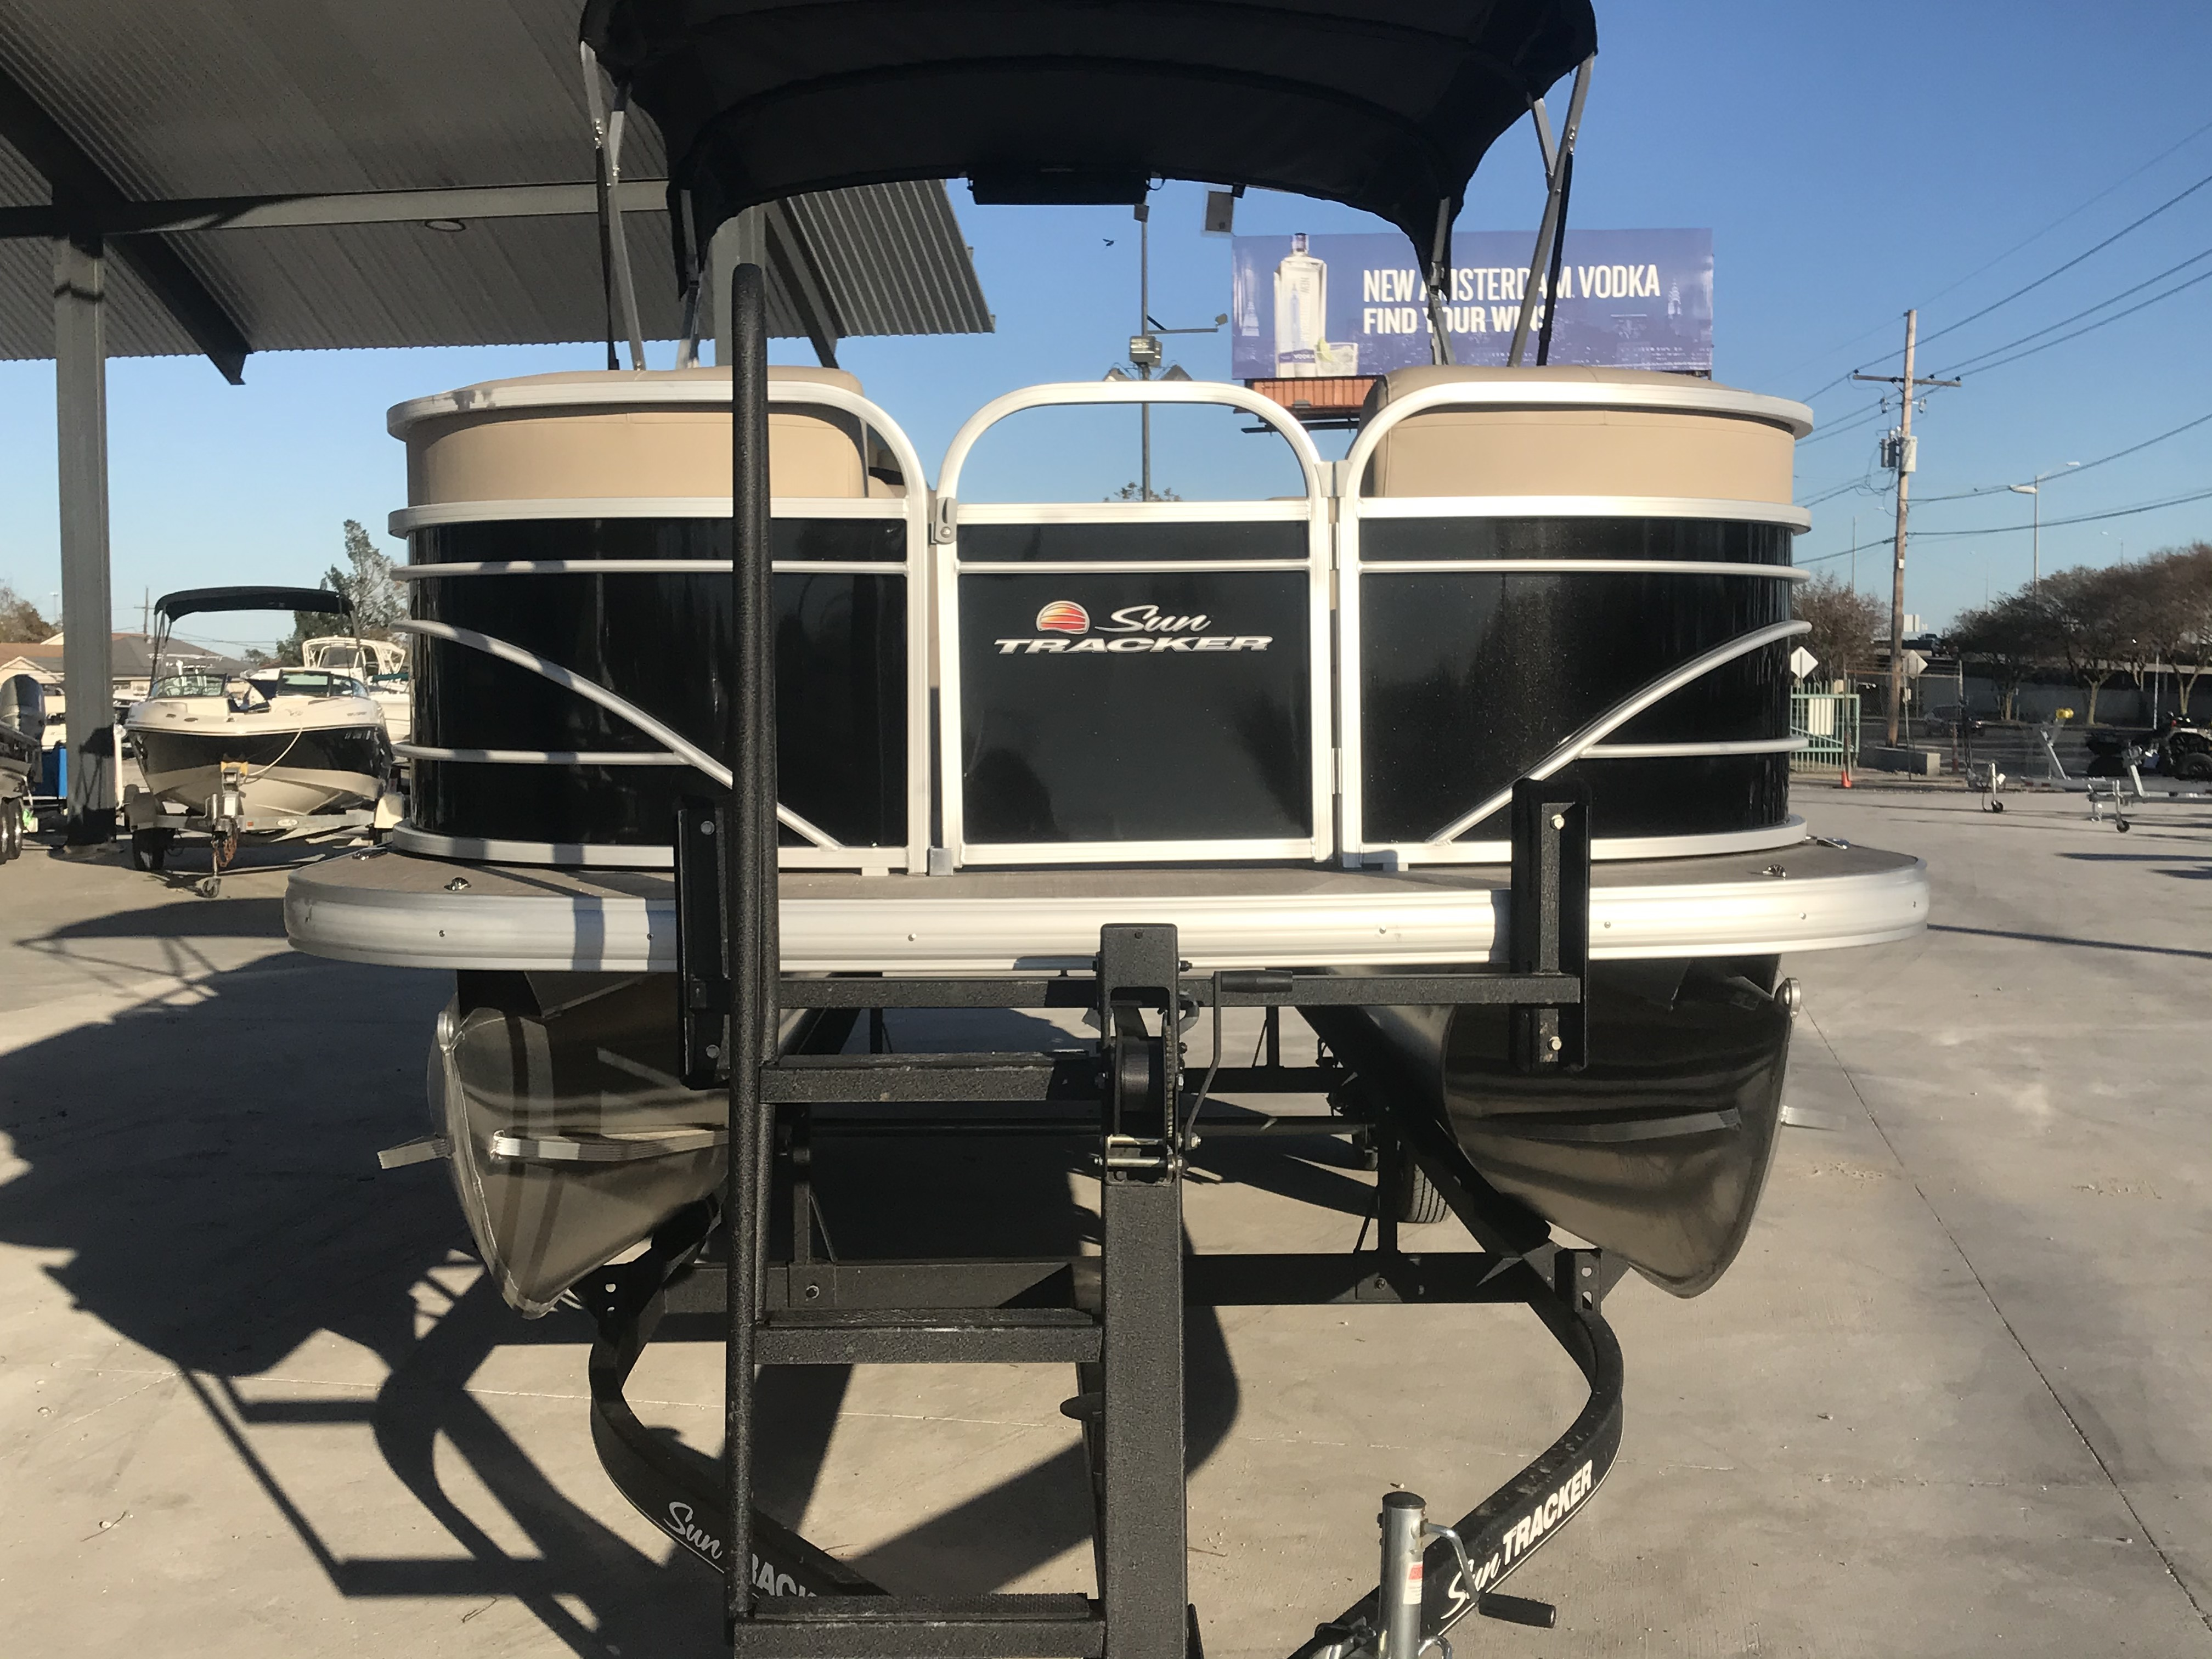 2022 Sun Tracker boat for sale, model of the boat is 22 Party Barge DLX & Image # 15 of 15